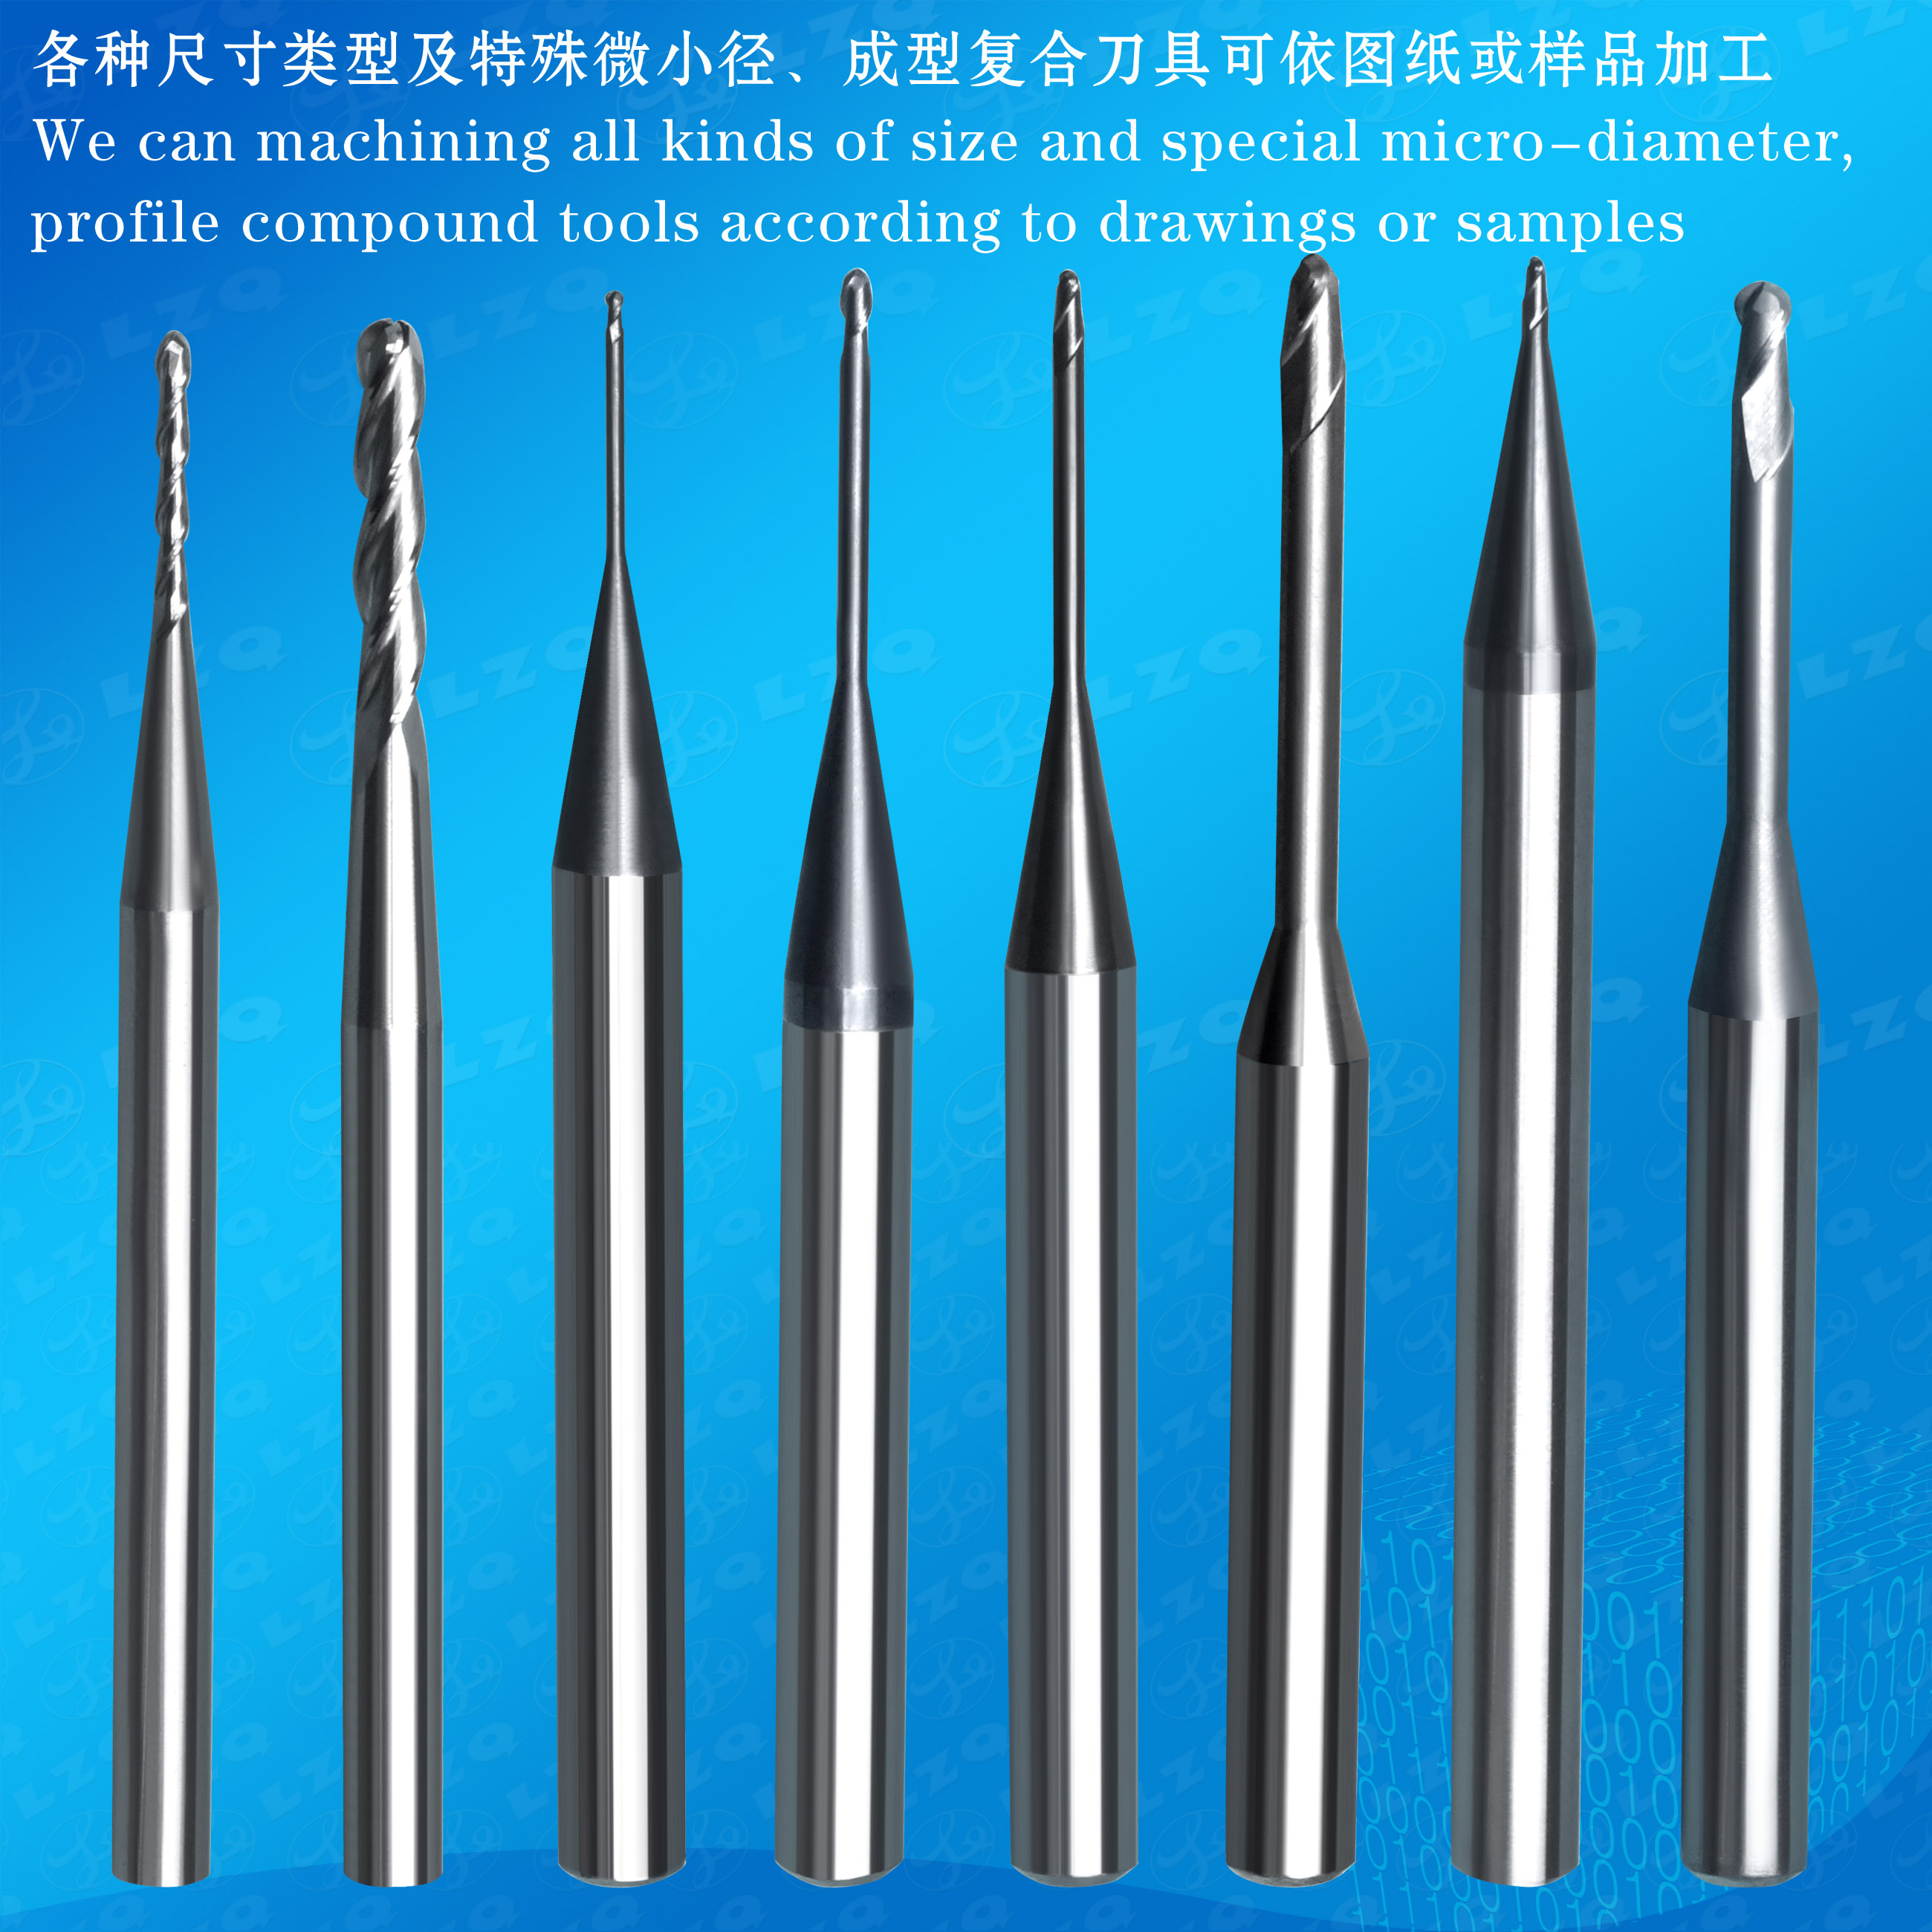 Roland Turning Pin, False Tooth Turning Pin, Cutting Needle